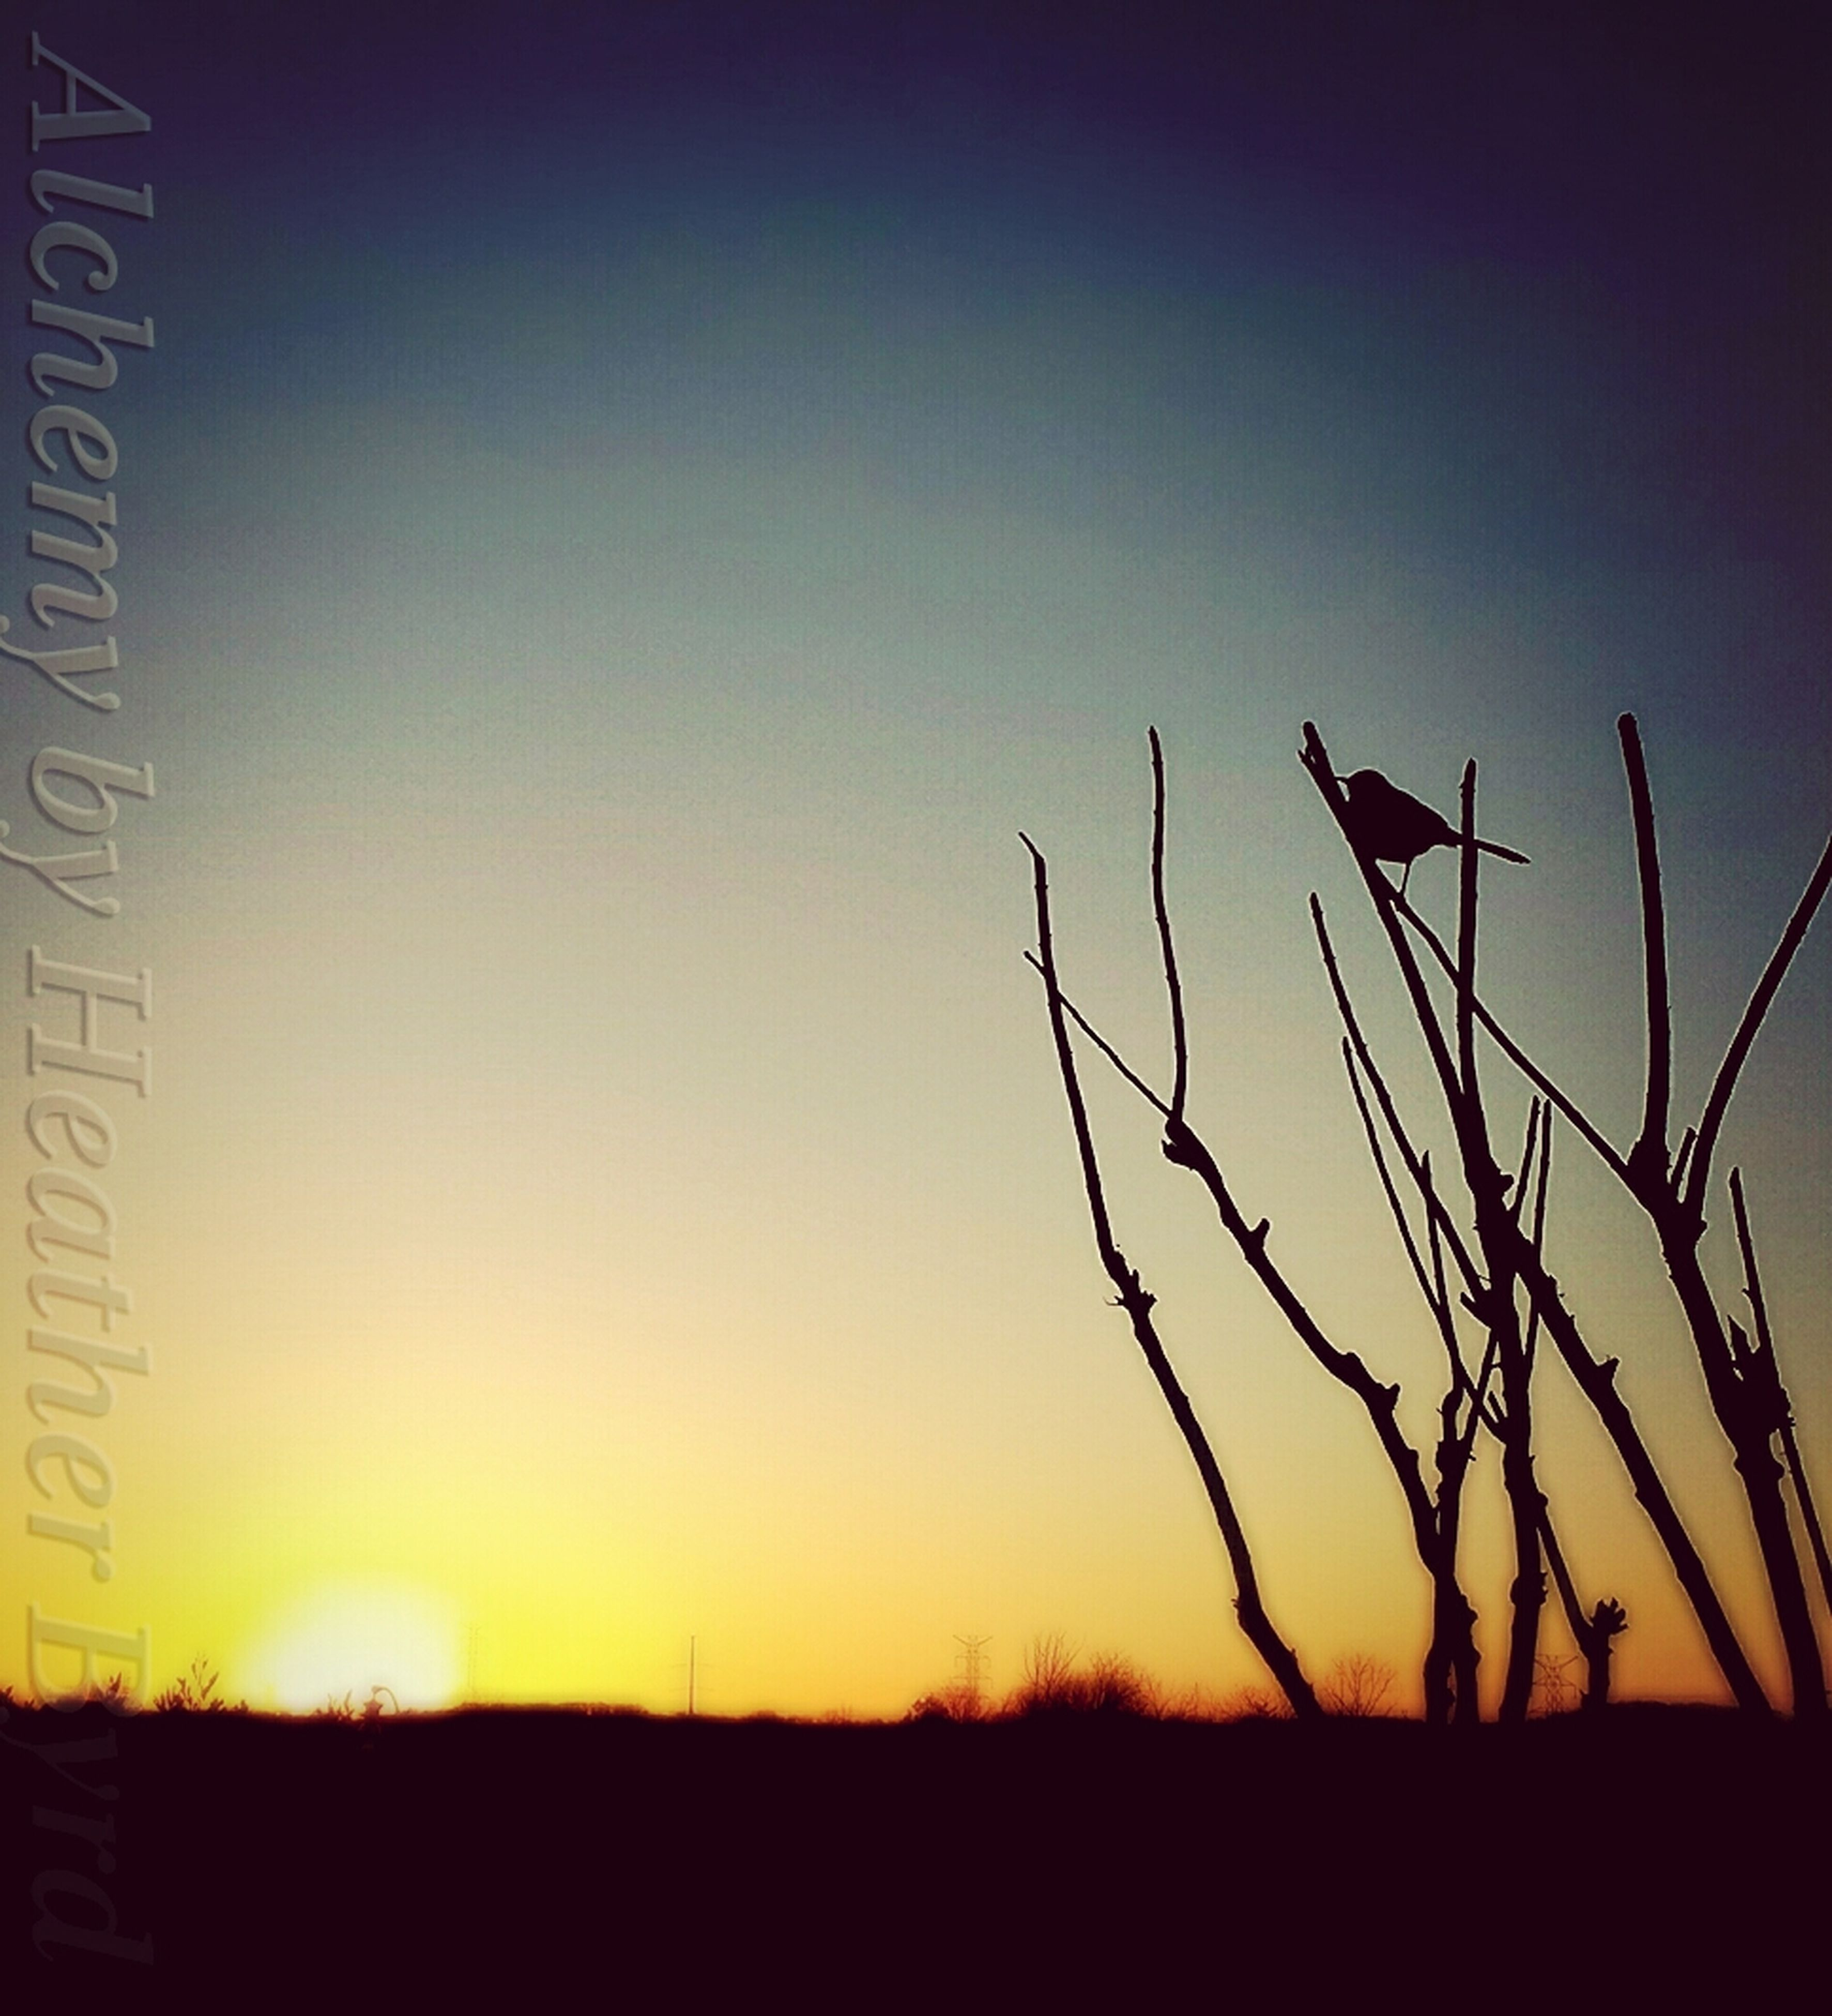 sunset, silhouette, clear sky, landscape, tranquil scene, field, tranquility, copy space, scenics, nature, beauty in nature, orange color, horizon over land, idyllic, dusk, sky, no people, growth, rural scene, outdoors